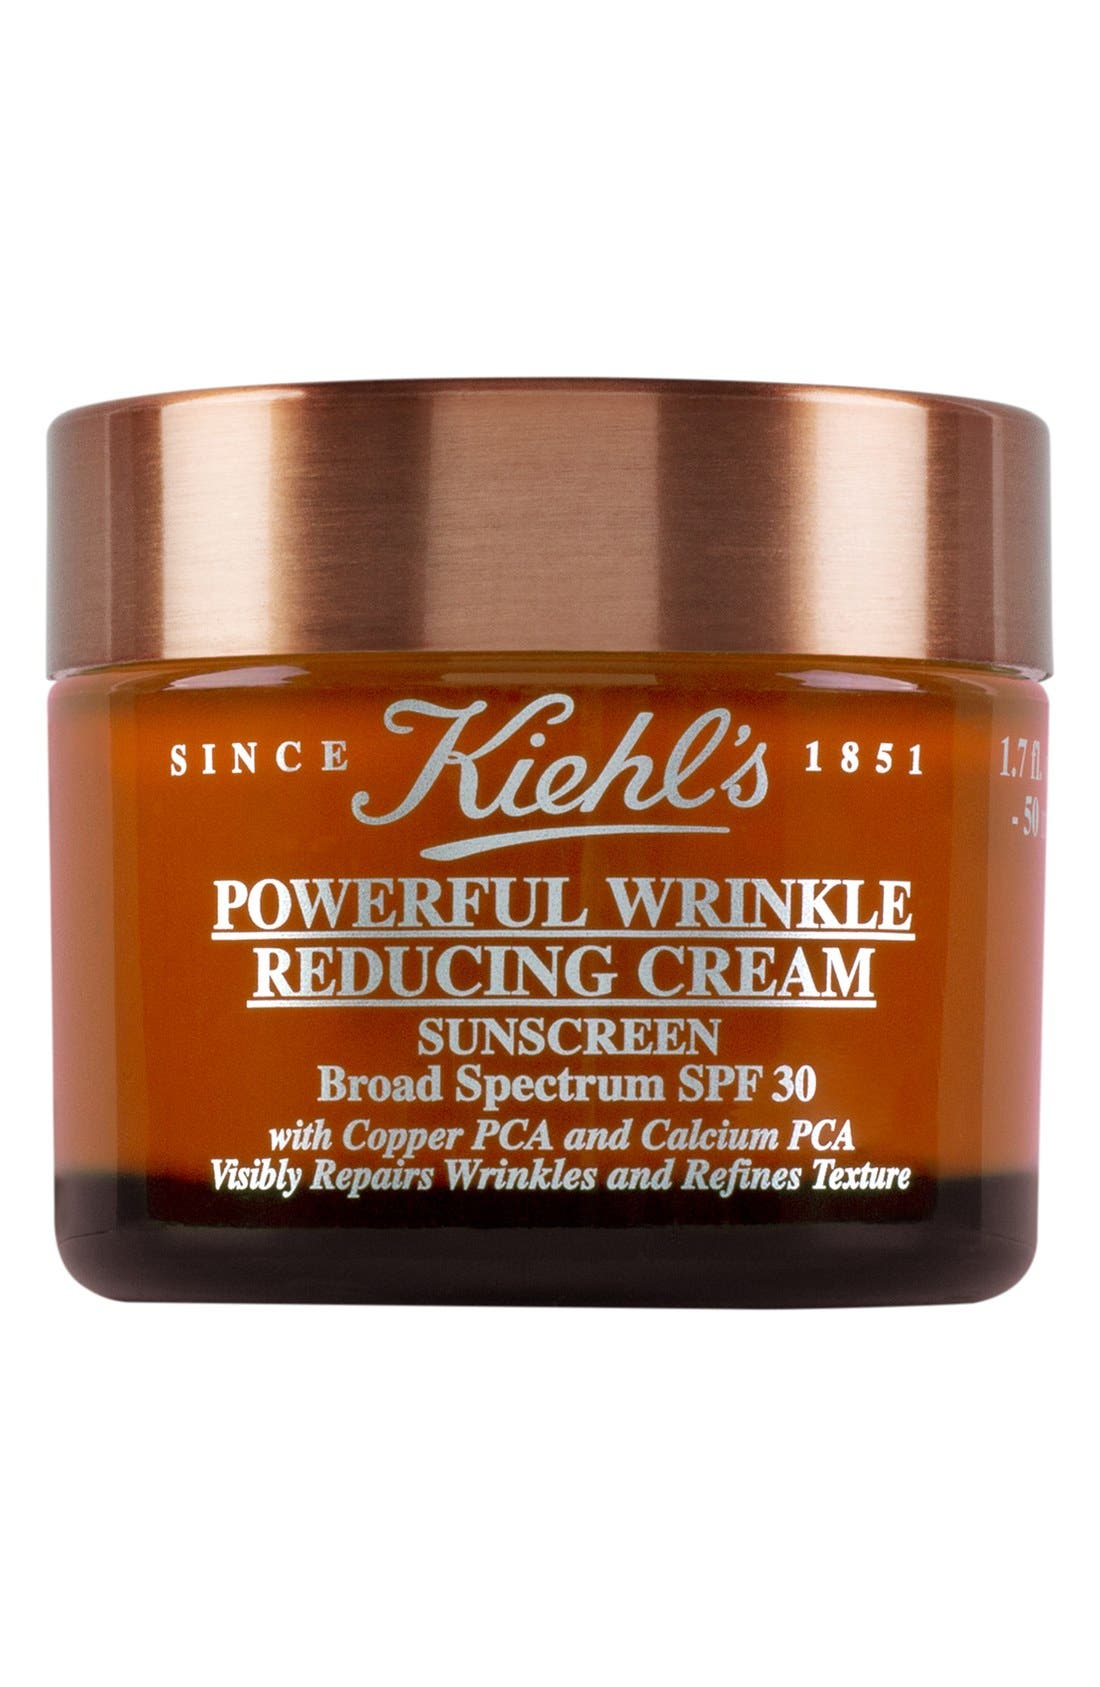 Kiehl's Since 1851 Powerful Wrinkle Reducing Cream Broad Spectrum SPF 30